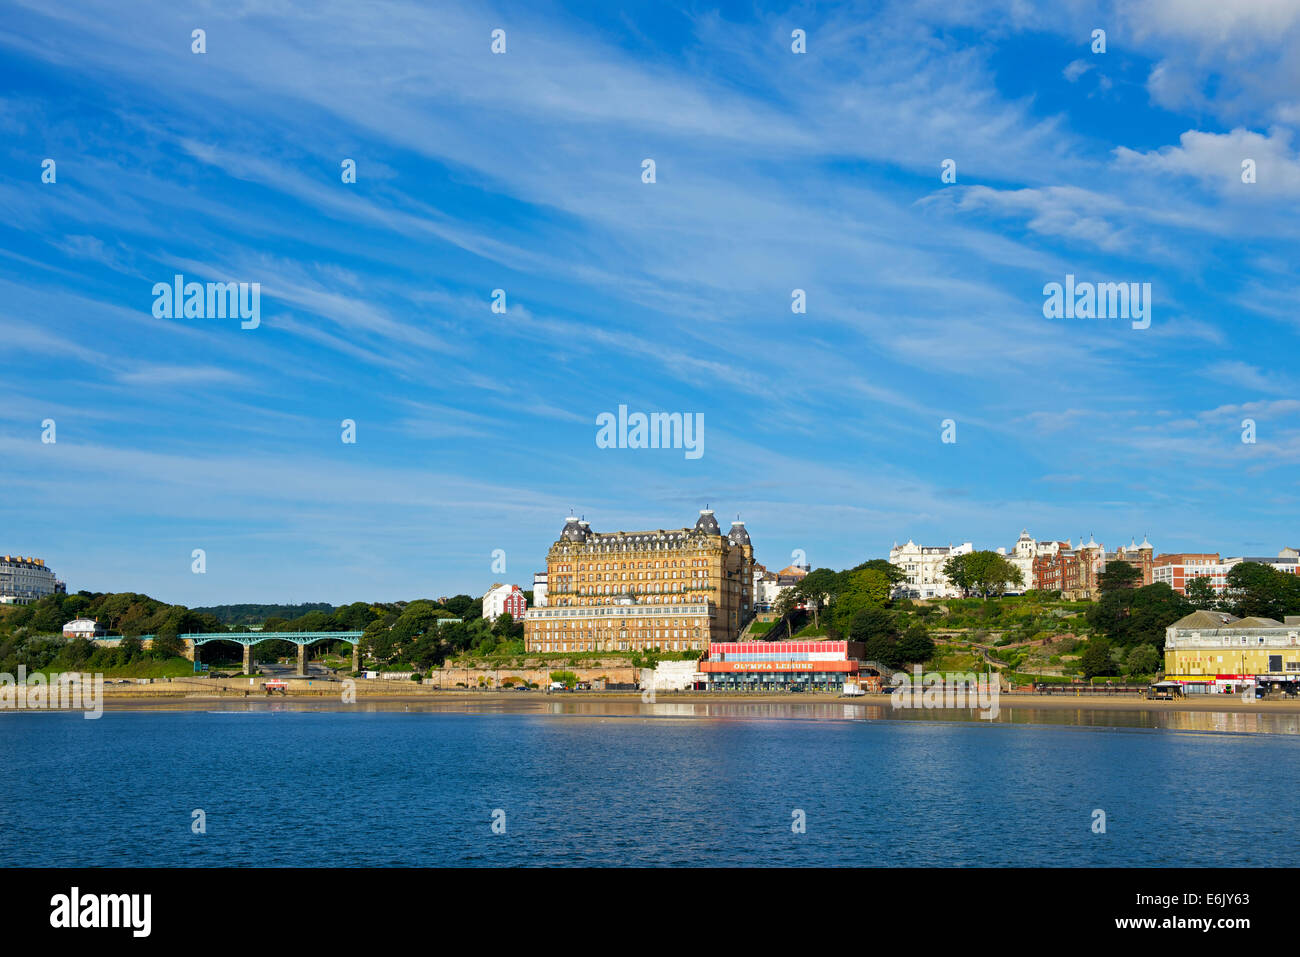 The Grand Hotel, Scarborough, North Yorkshire, England UK - Stock Image